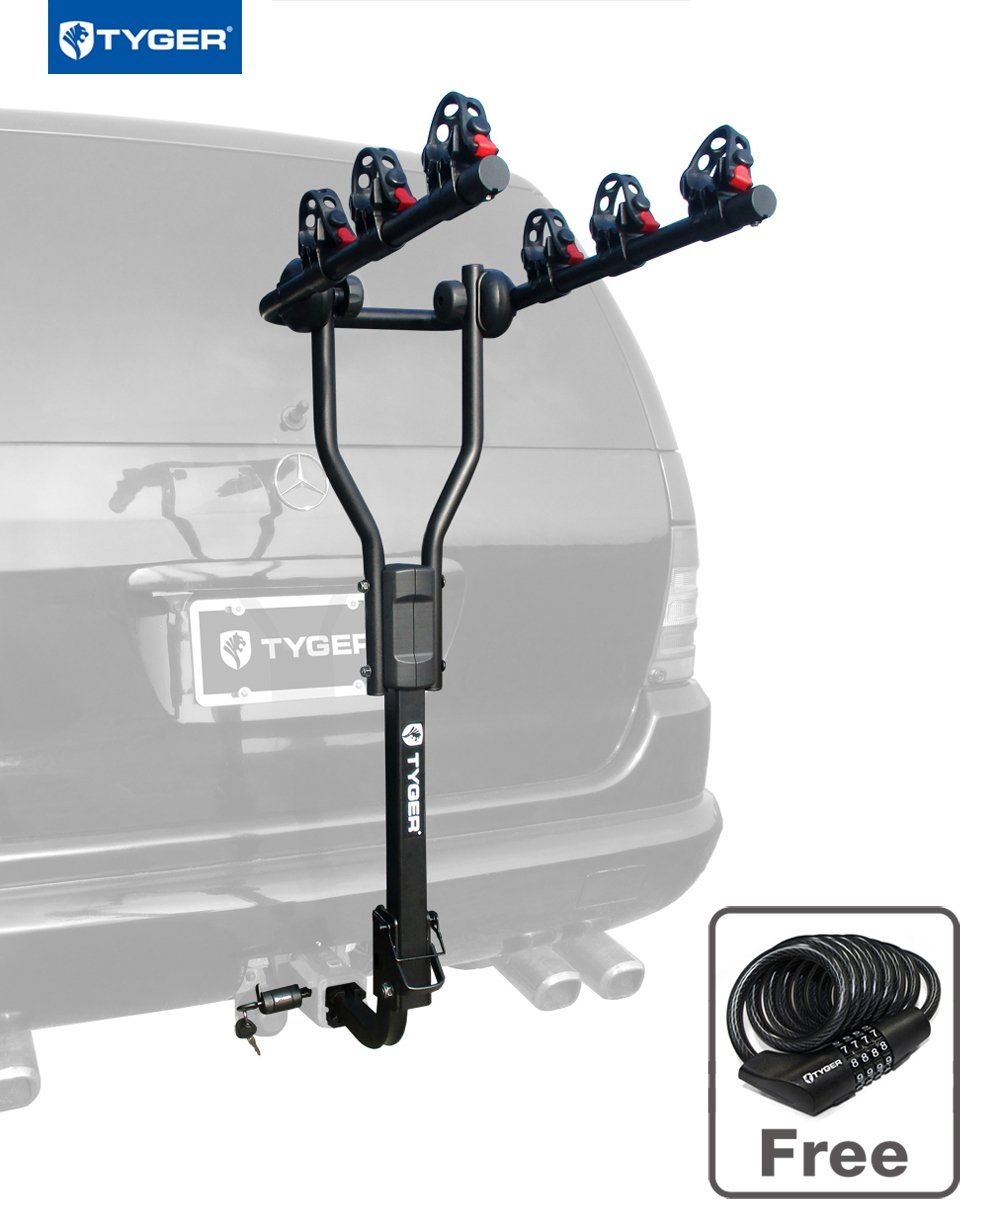 Tyger Tg Rk3b101s 3 Bike Hitch Mount Bicycle Carrier Rack Free Hitch Lock Cable Lock Fits Both 1 25 And 2 Hitch Receiver With Images Hitch Bike Rack Bike Hitch Bike